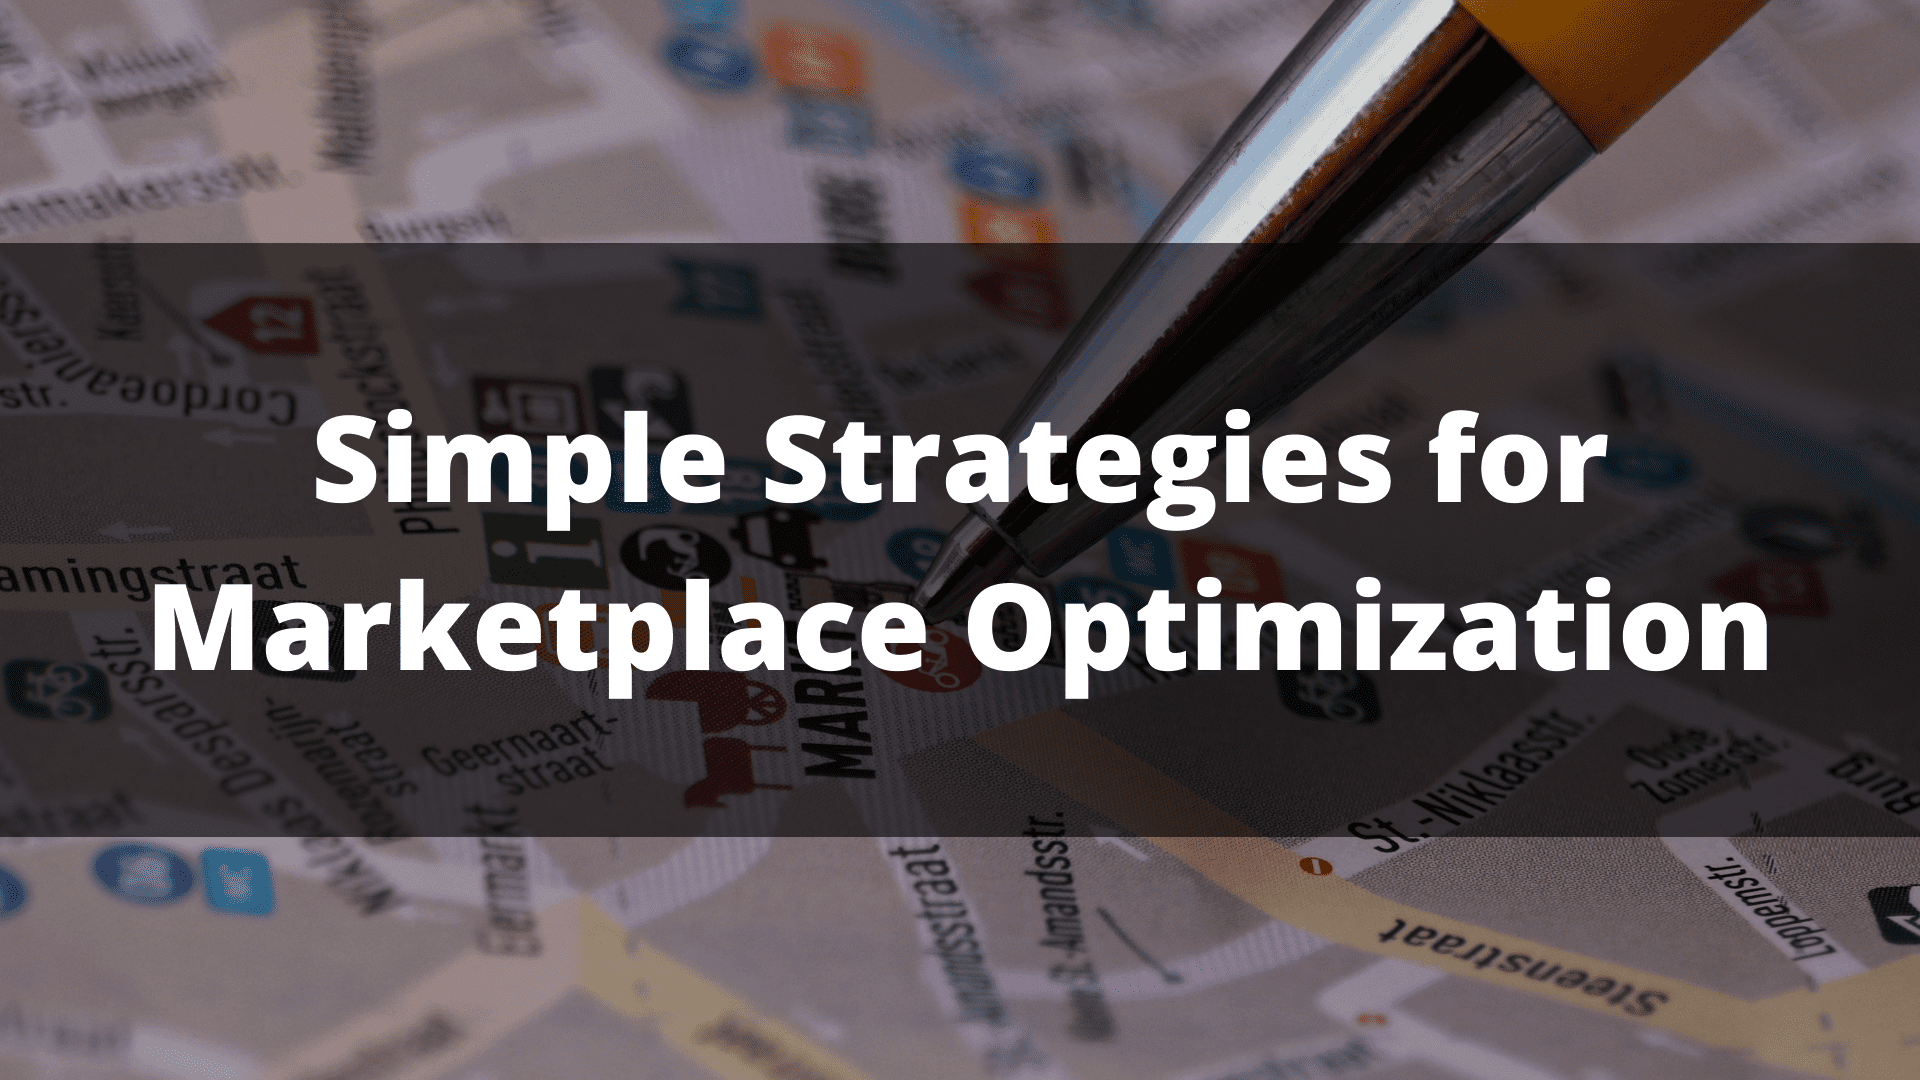 Simple Strategies for Marketplace Optimization